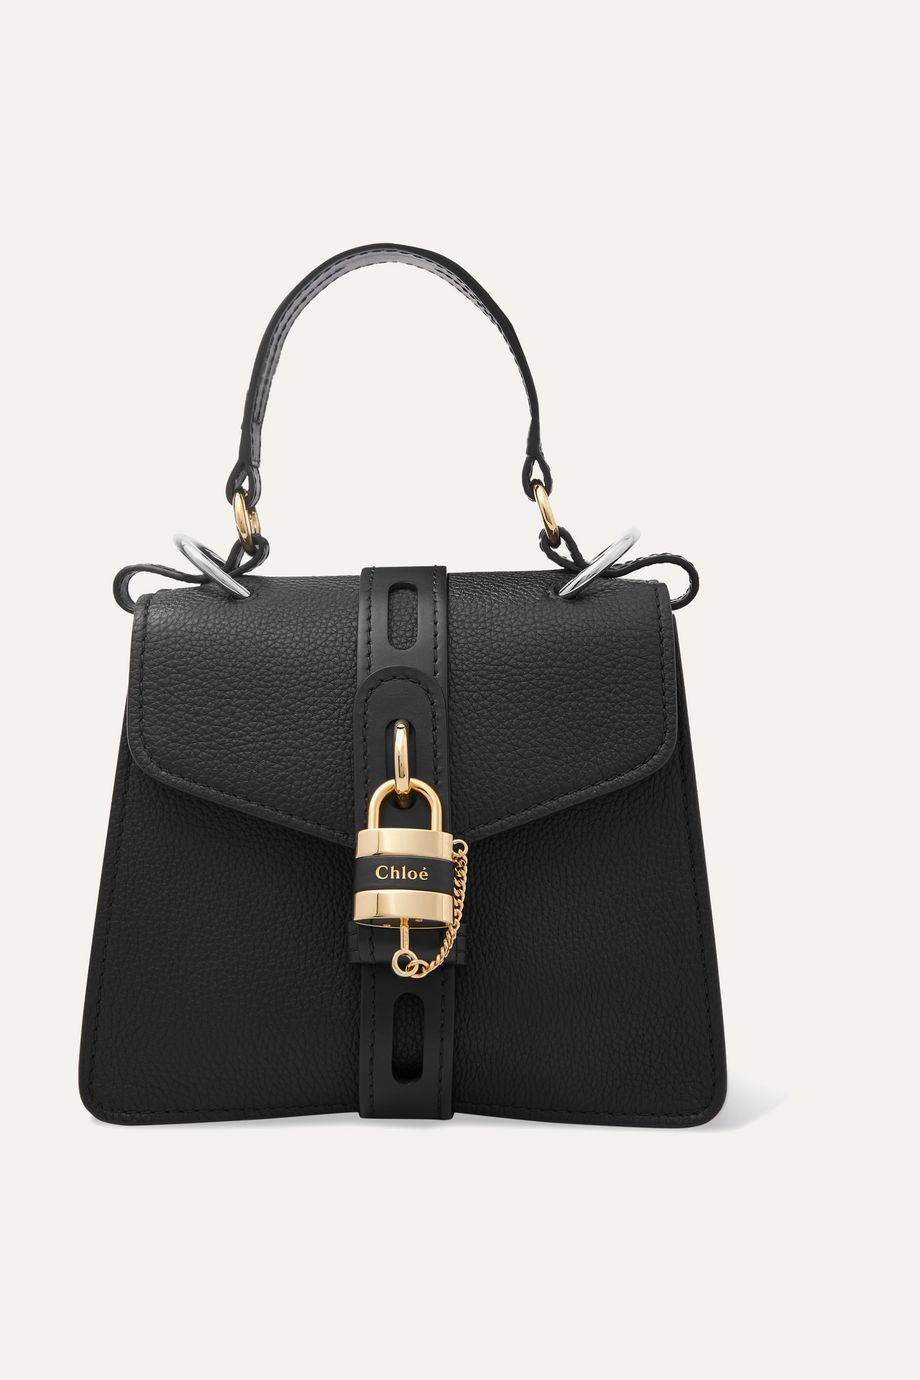 Chloé Aby small textured and smooth leather tote